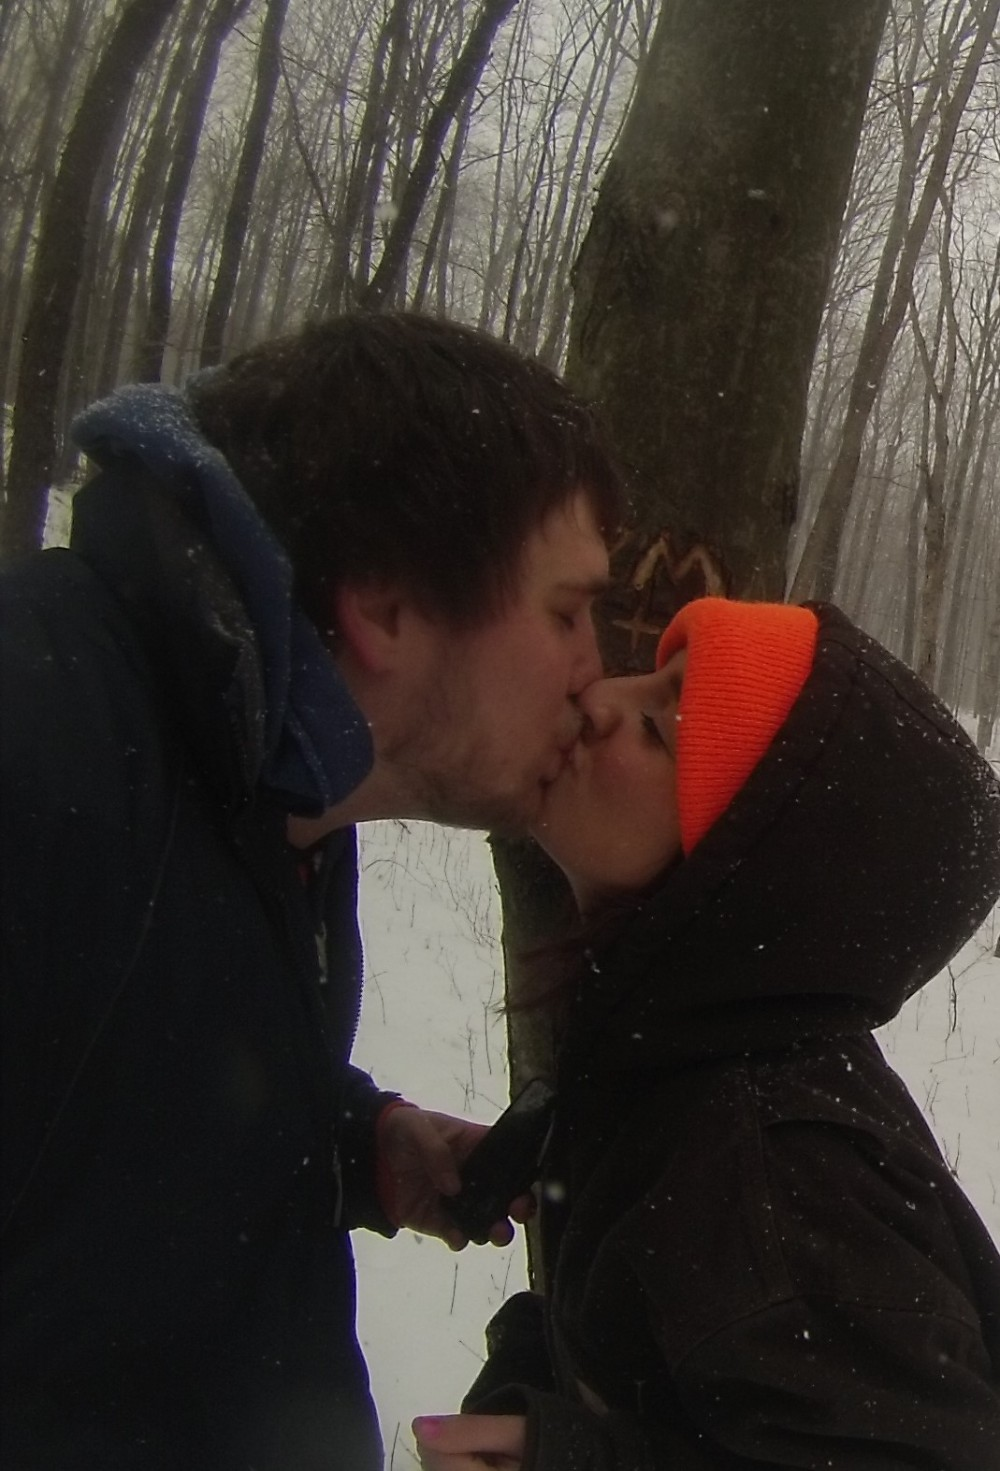 Image 2 of Kaylee and Zach's Snowy Woods Proposal